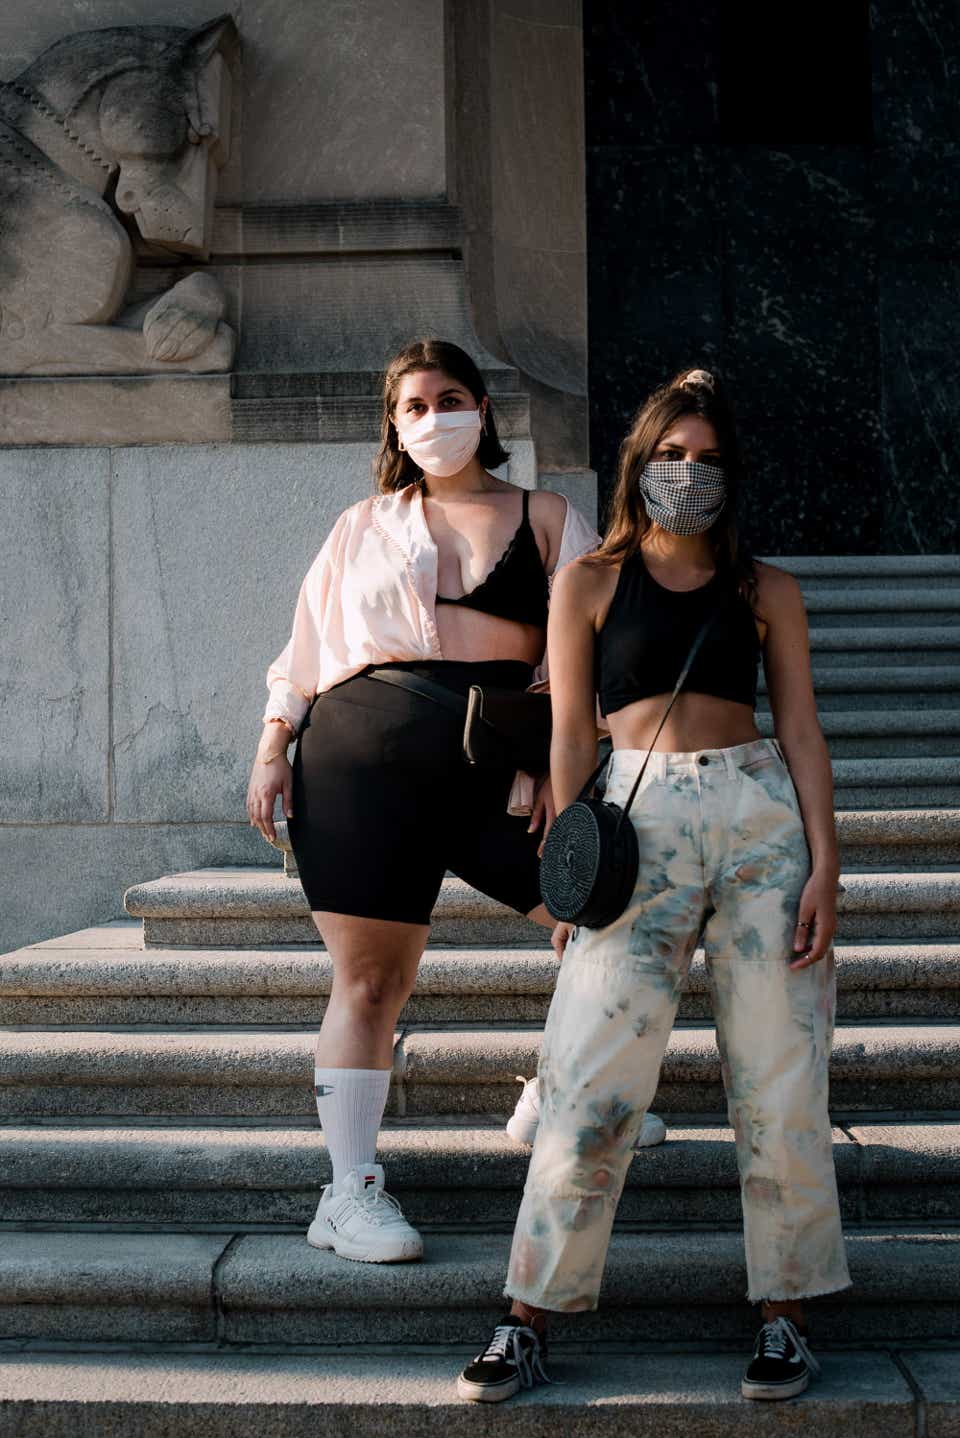 Alesandra and Sam are posing together on a set of historic steps in Philadelphia. Alesandra is on the left and is wearing a light pink blouse that's unbuttoned with a black bralette underneath. With that, she has on black bike shorts, a black fanny pack, tube socks, and FILA sneakers. Sam is wearing a gray mask, a black bralette, and tie-dye carpenter pants. For shoes, she is wearing Vans sneakers.